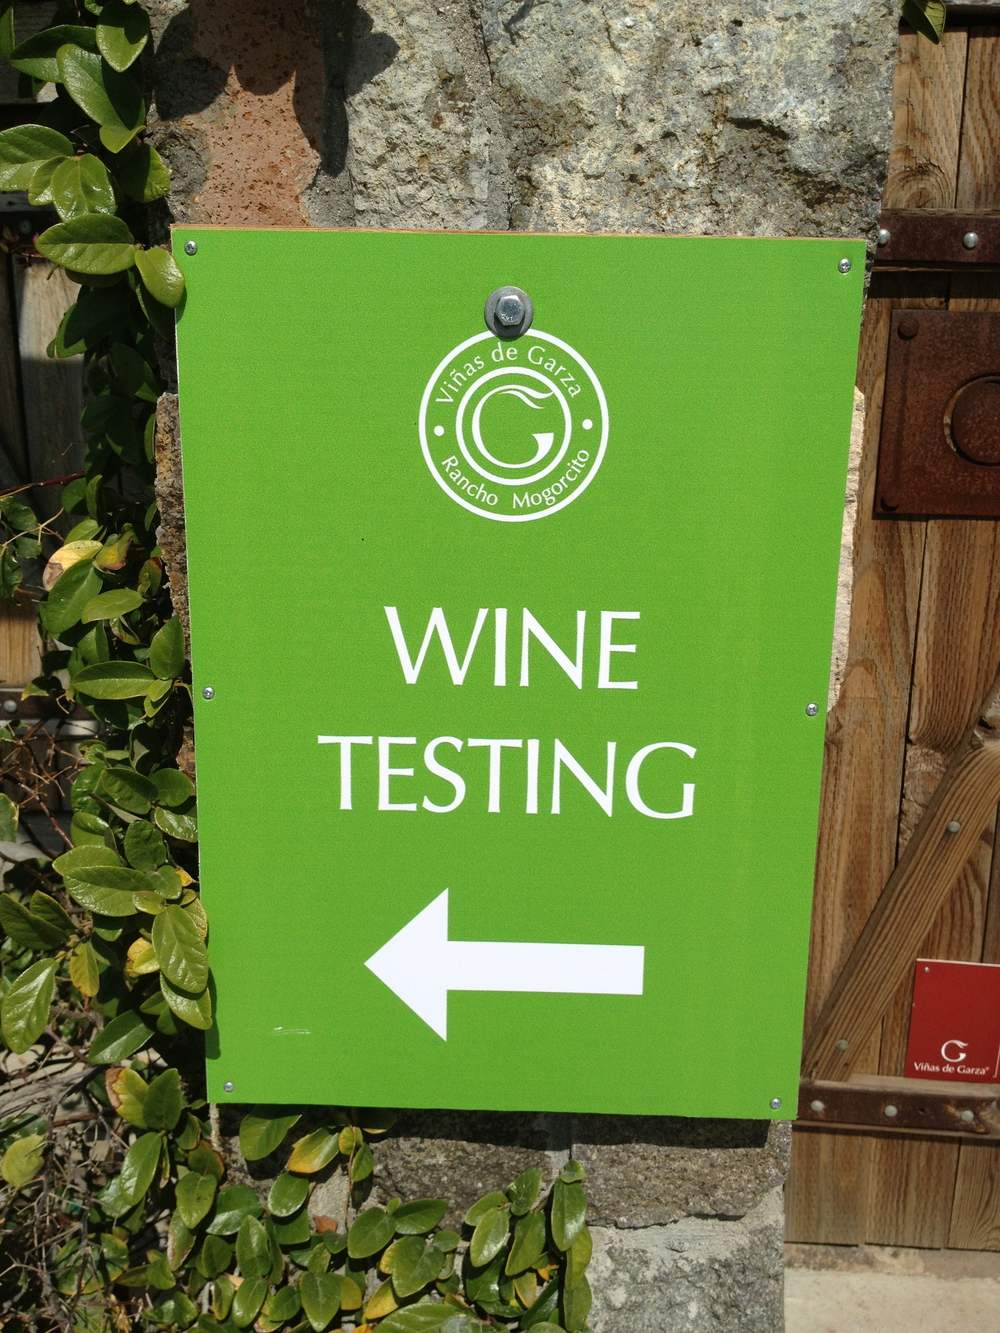 The wines aced their test